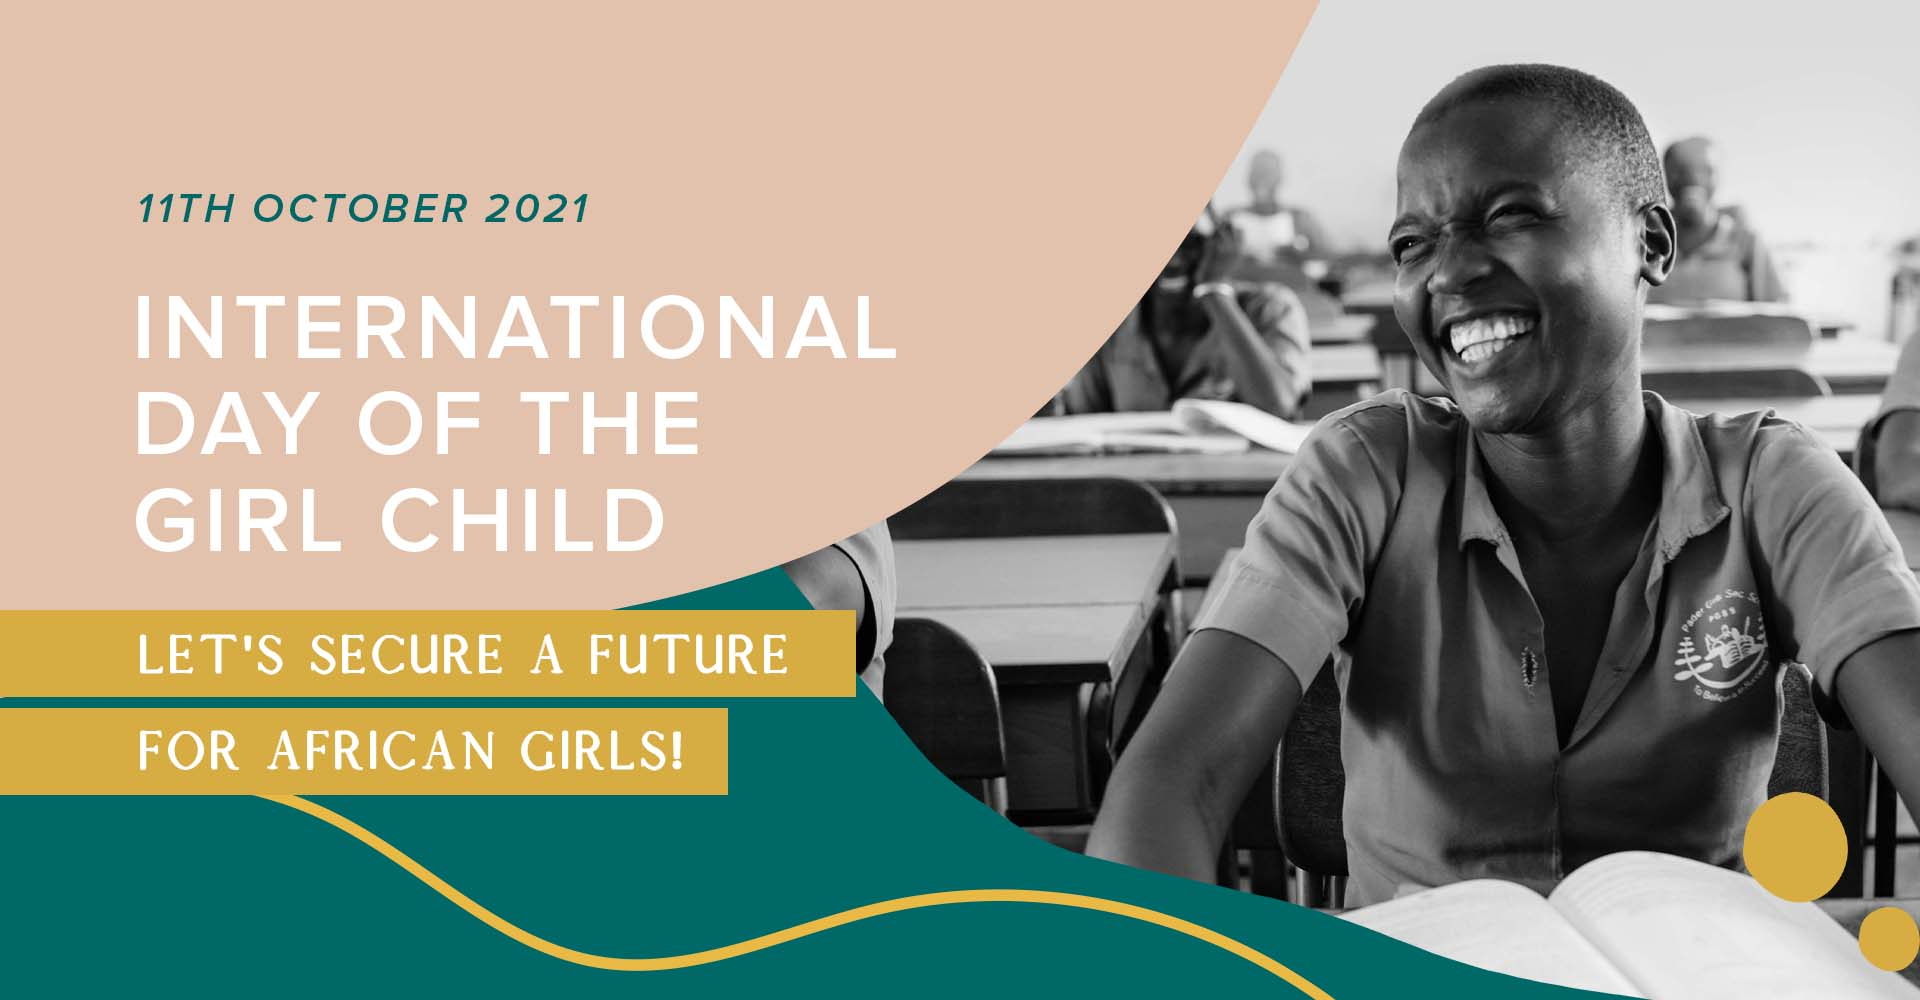 International Day Of The Girl Child Campaign